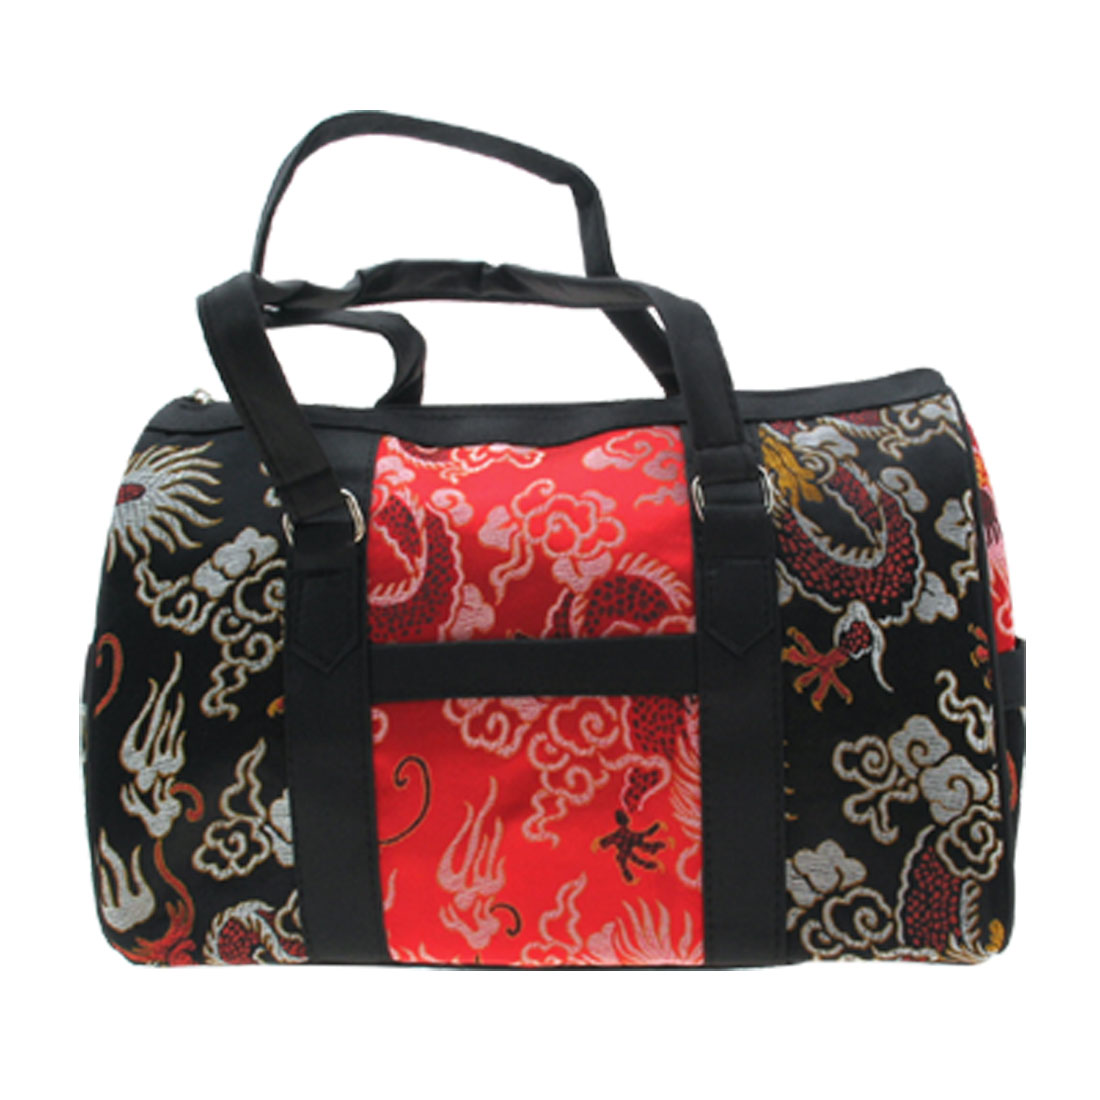 Fashion Jewelry Designer Embroidery Ladylike Shoulder Bag Black and Red